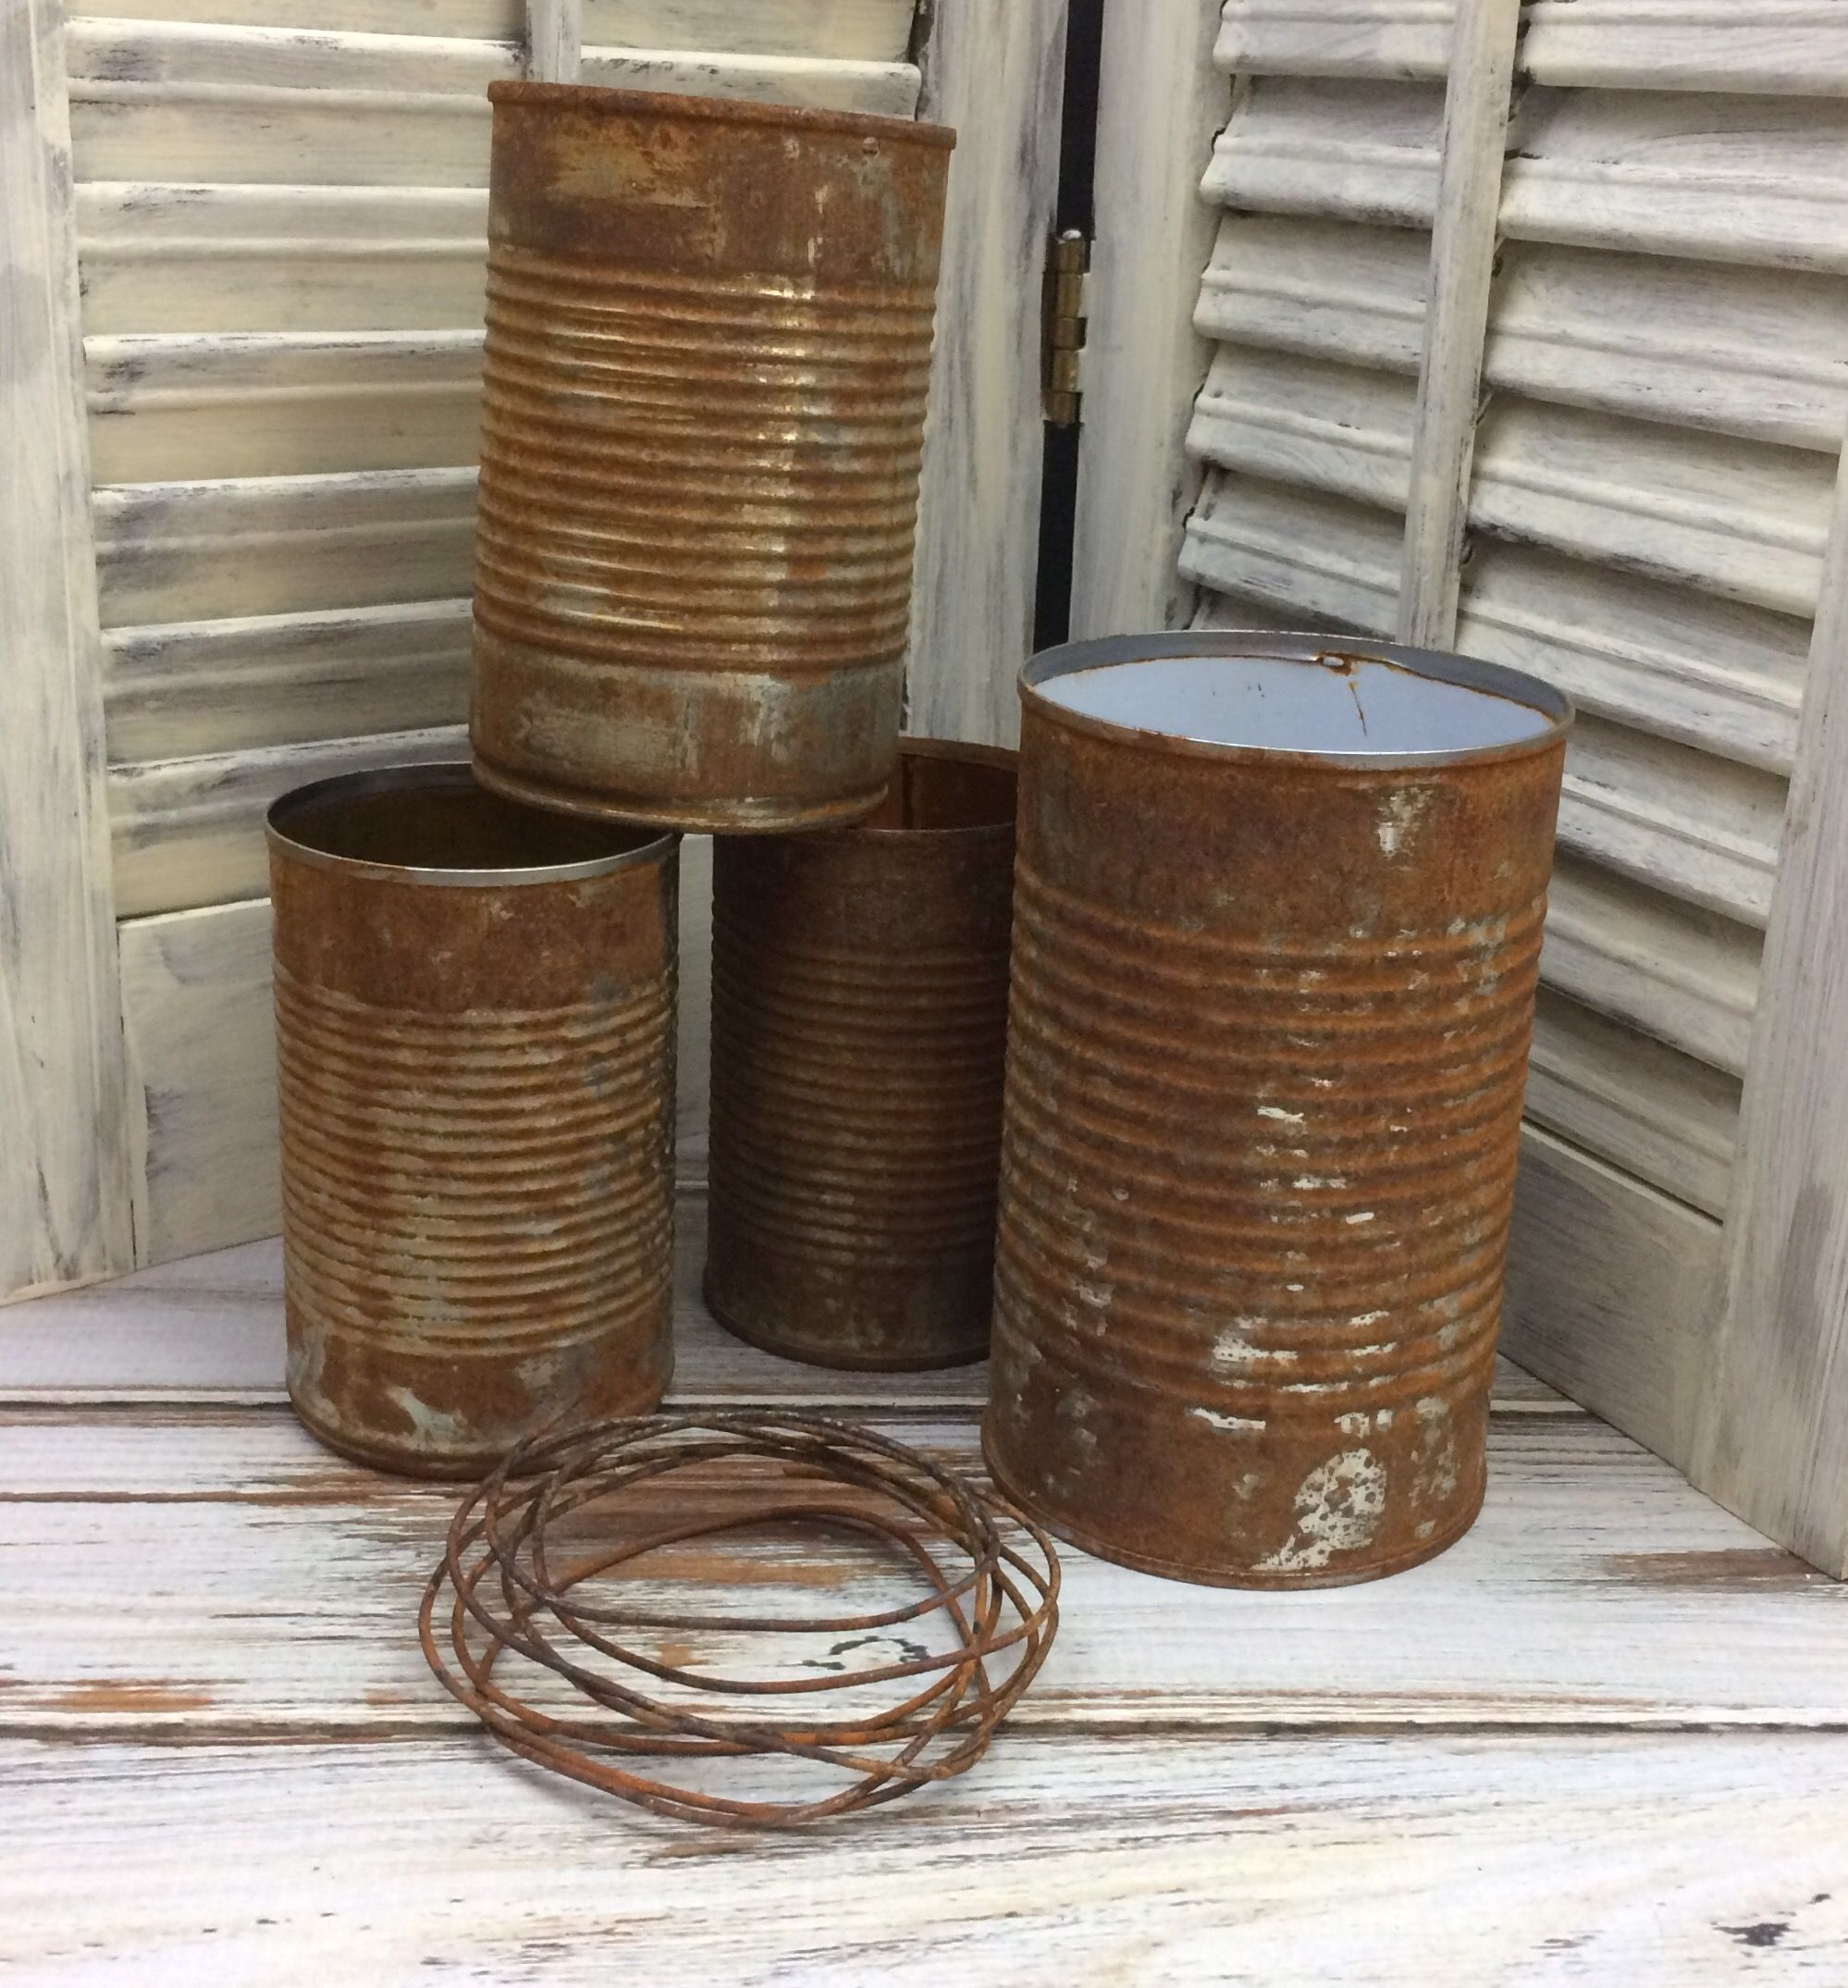 Rusty tin craft supplies - How To Rust Tin Cans For Other Craft Projects Rusty Tincans